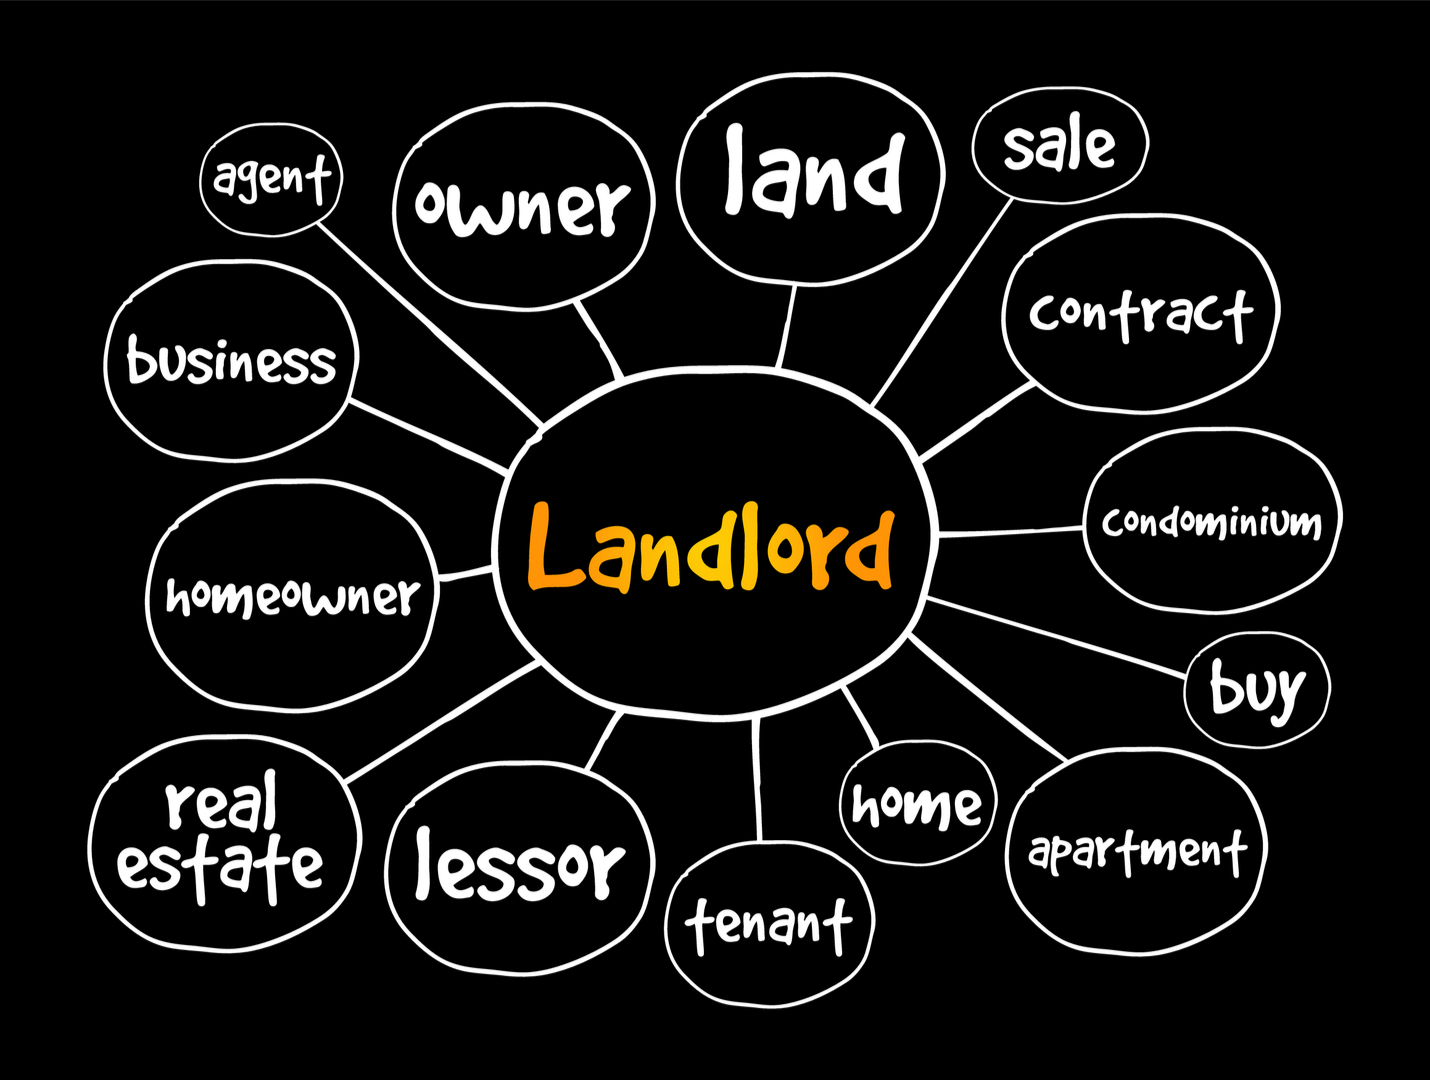 a diagram with the word Landlord on the center linking to other circles around it with other words such as owner, lesser, contract, tenant, land, real estate, etc.